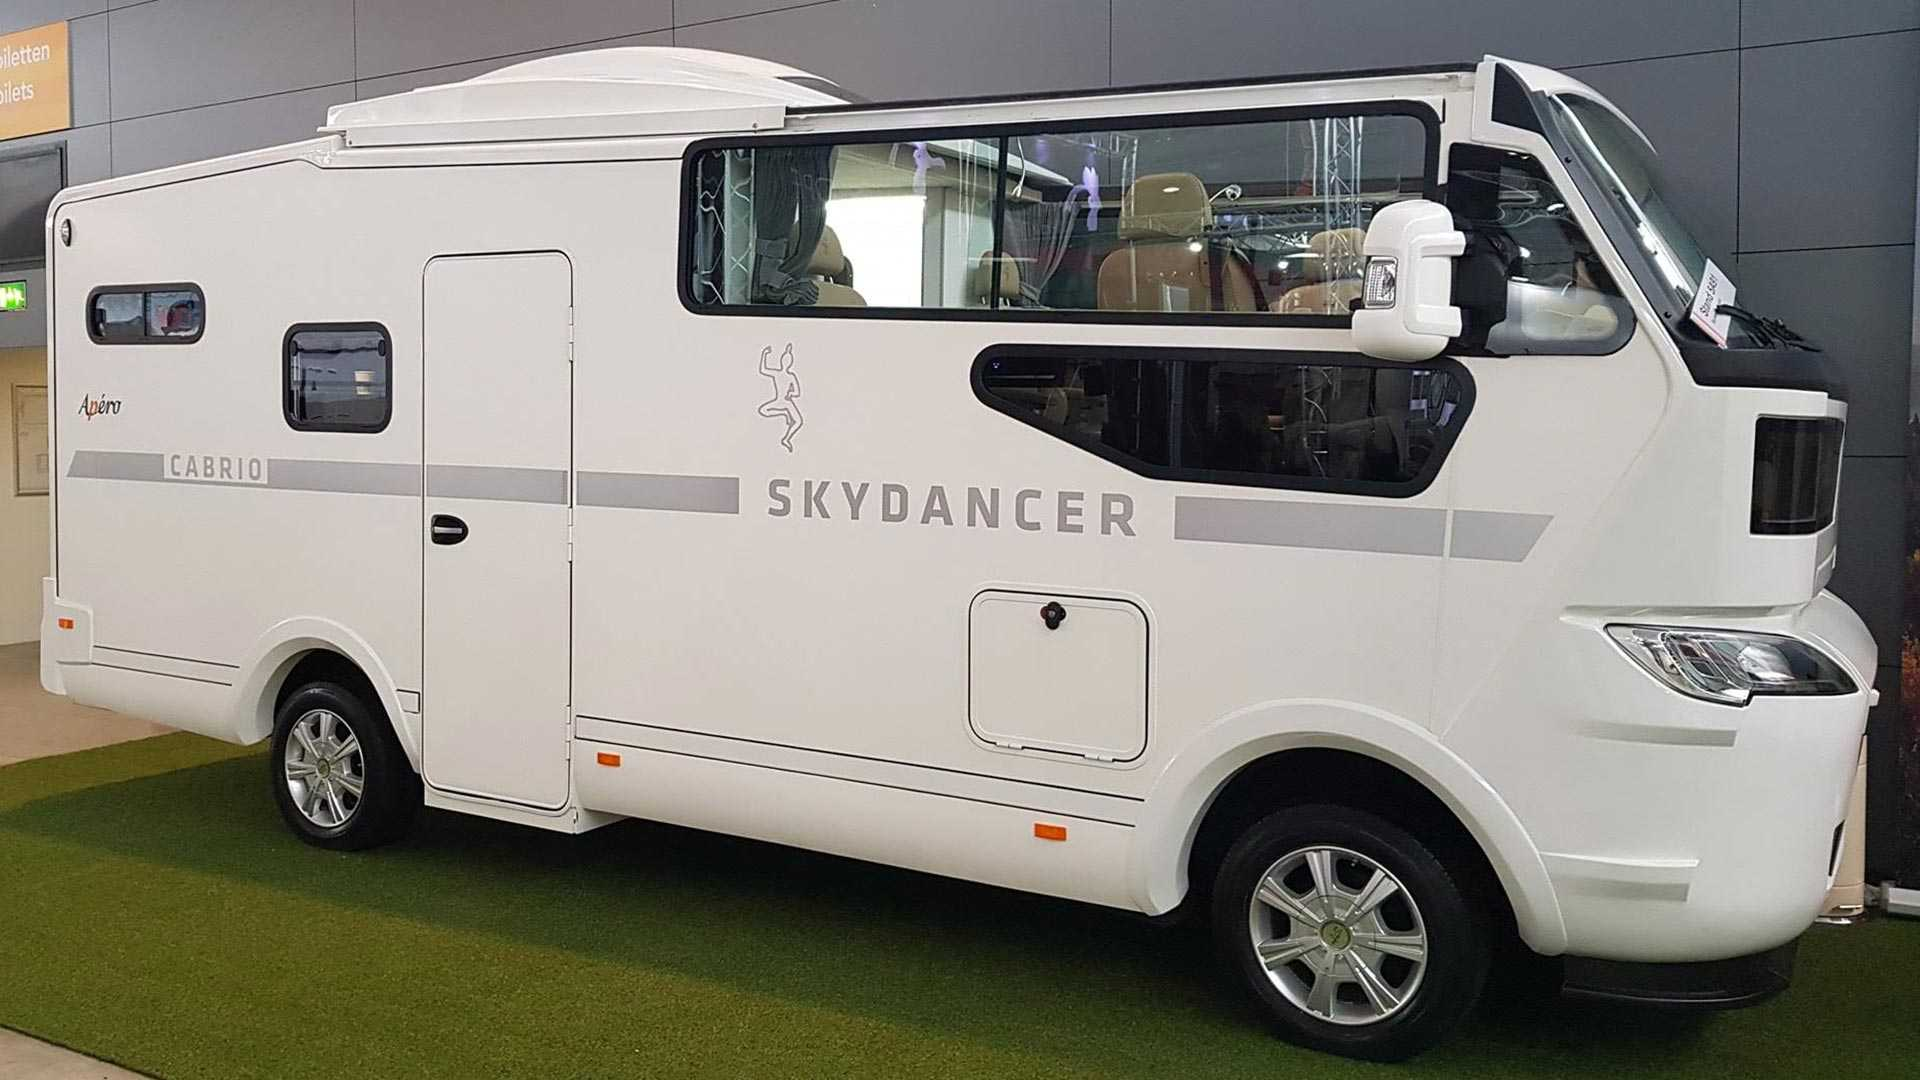 German Company Unveils World's First RV With A Convertible Top